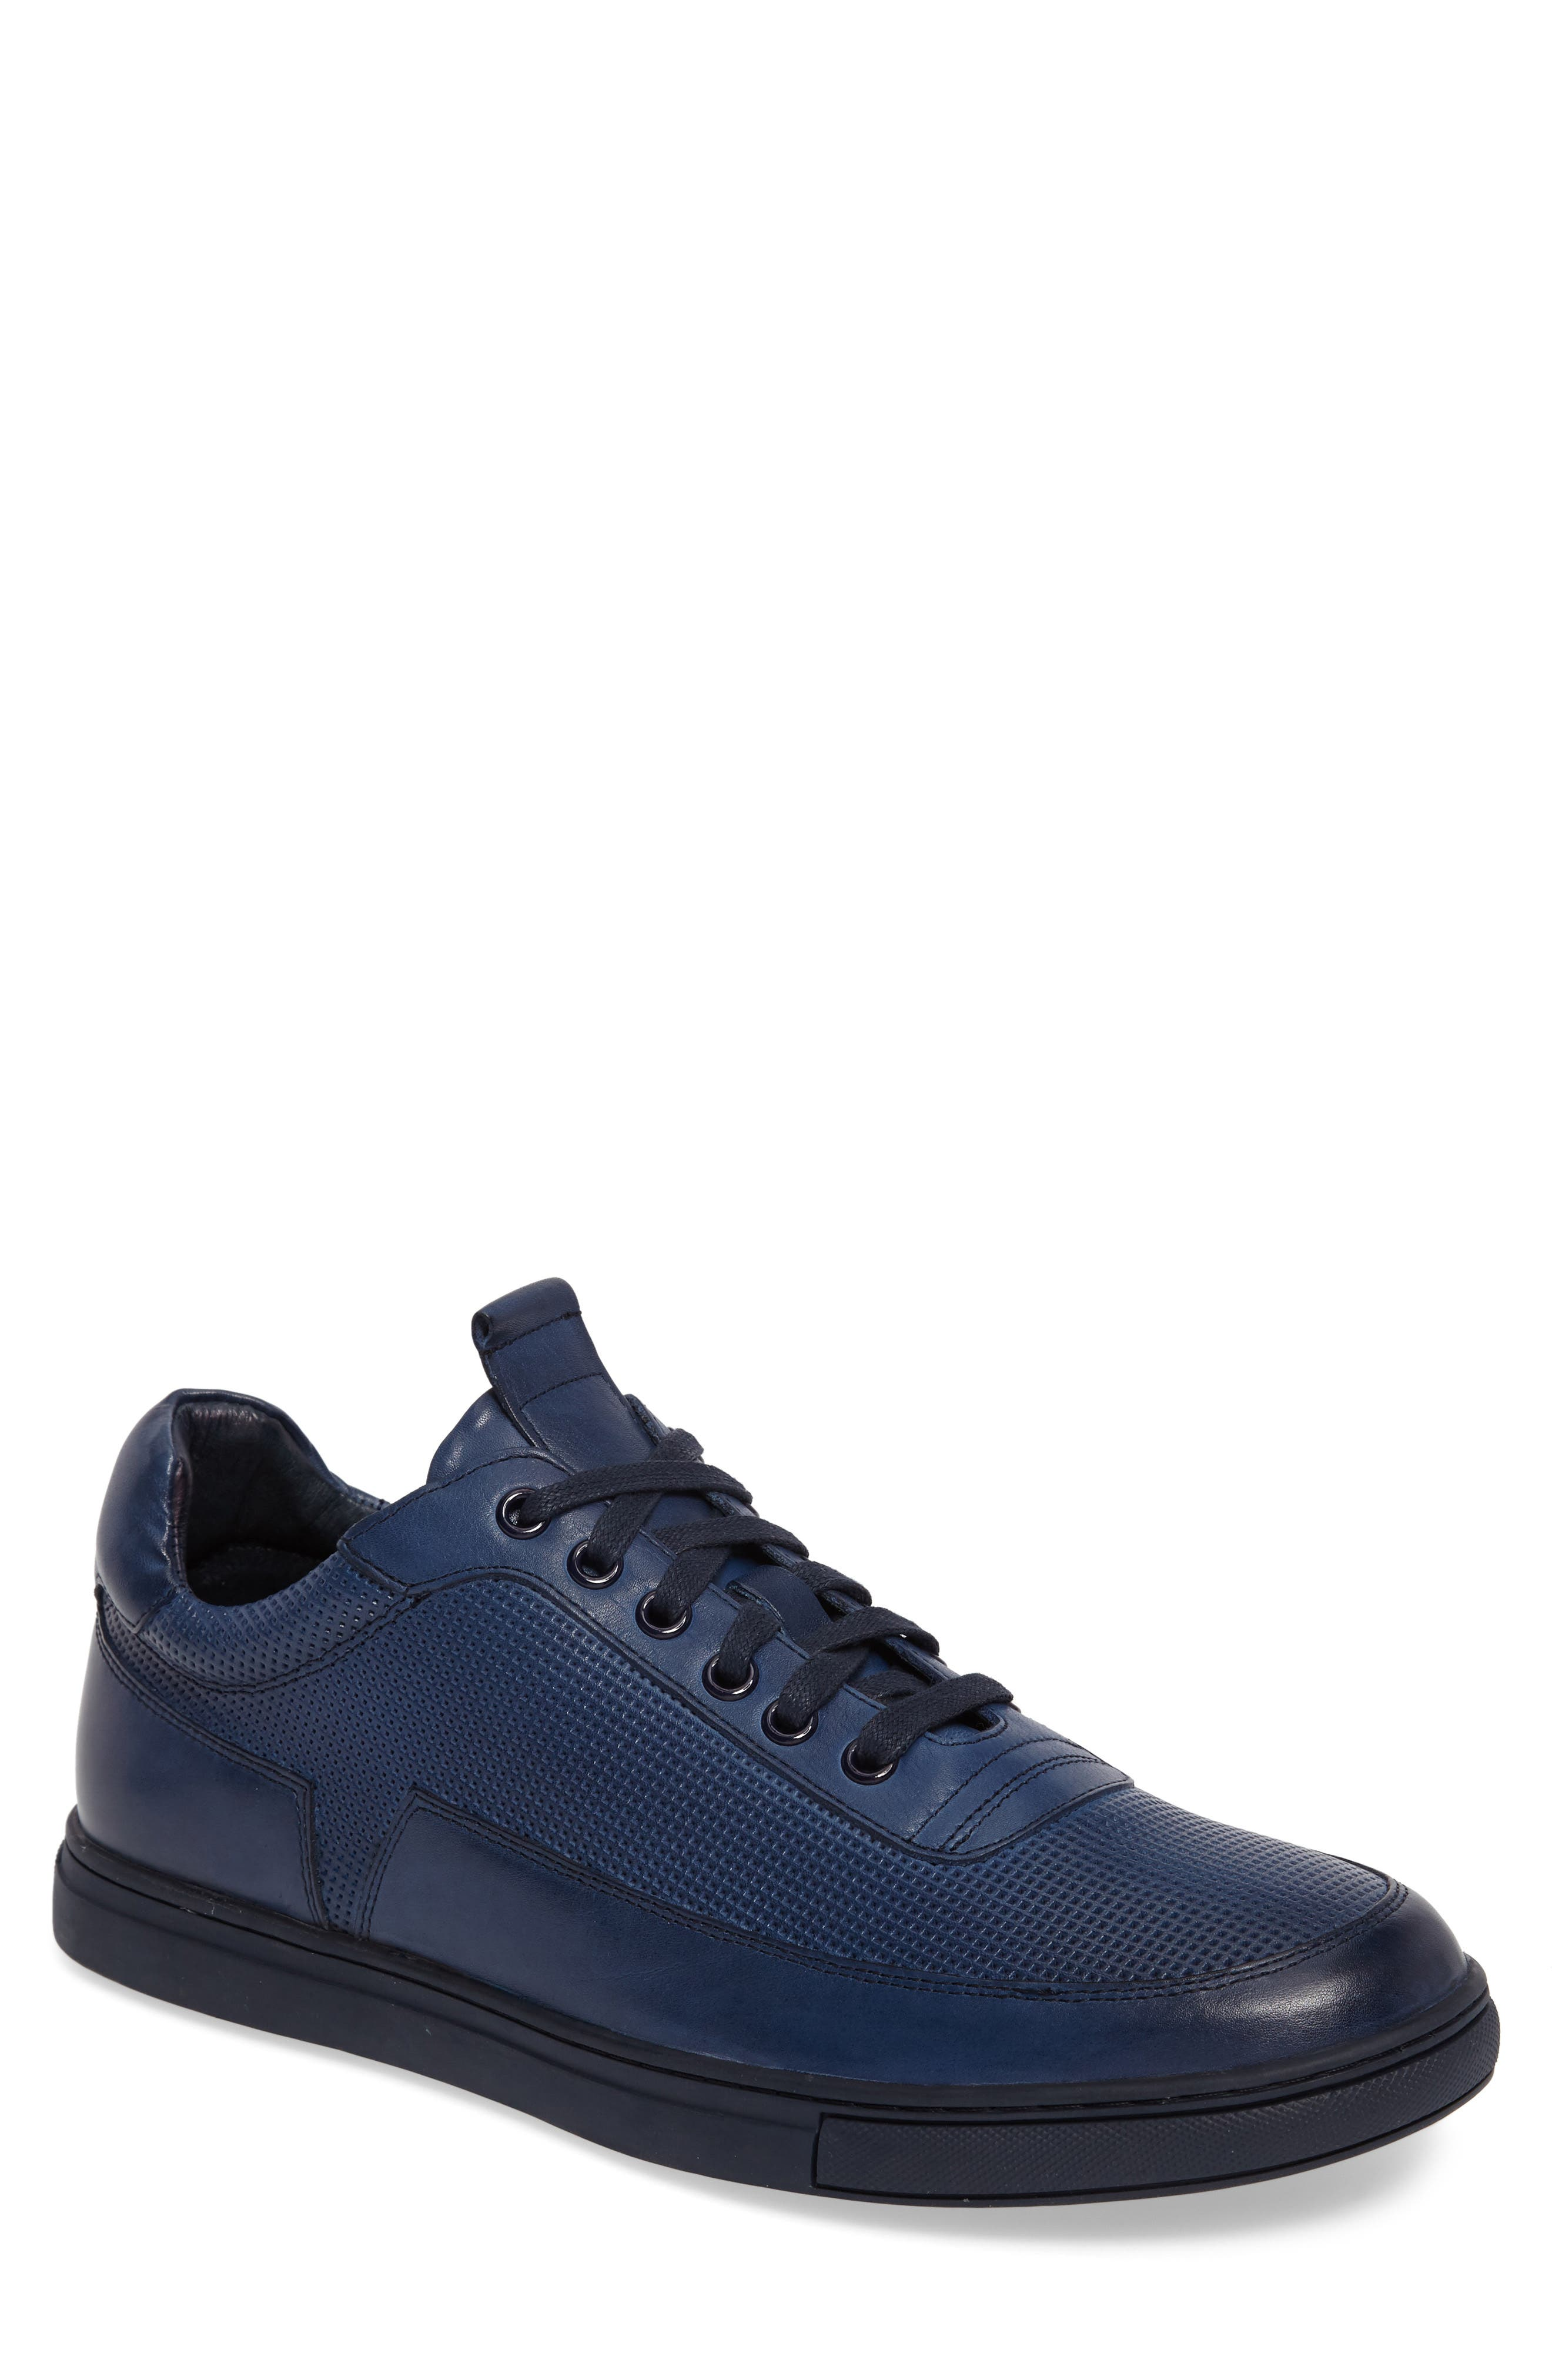 Harmony Sneaker,                         Main,                         color, BLUE LEATHER